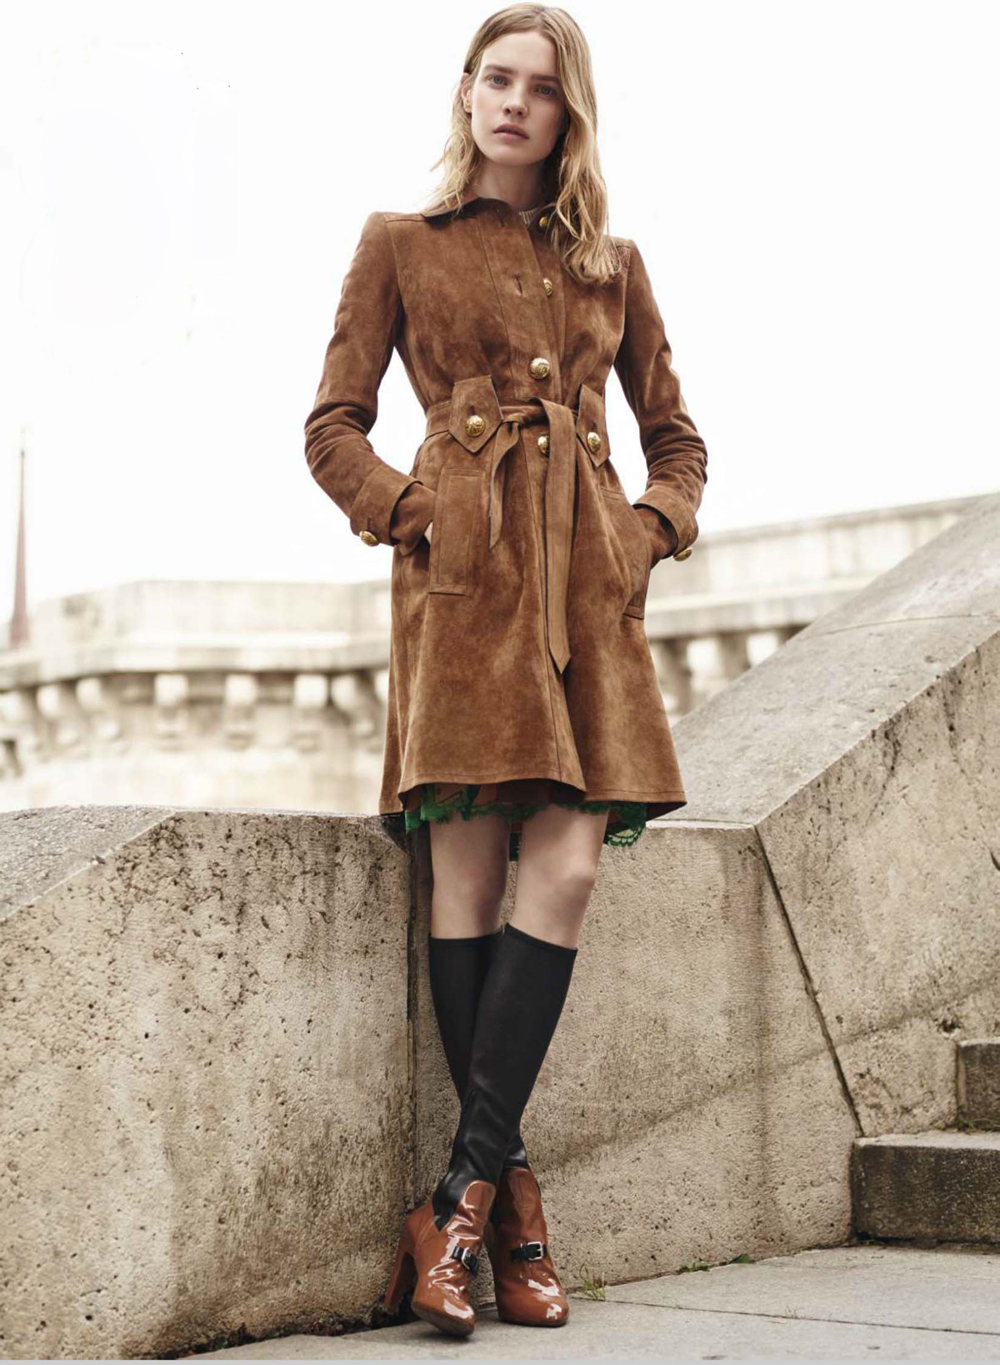 Vogue US December 2014 via www.fashionedbylove.co.uk